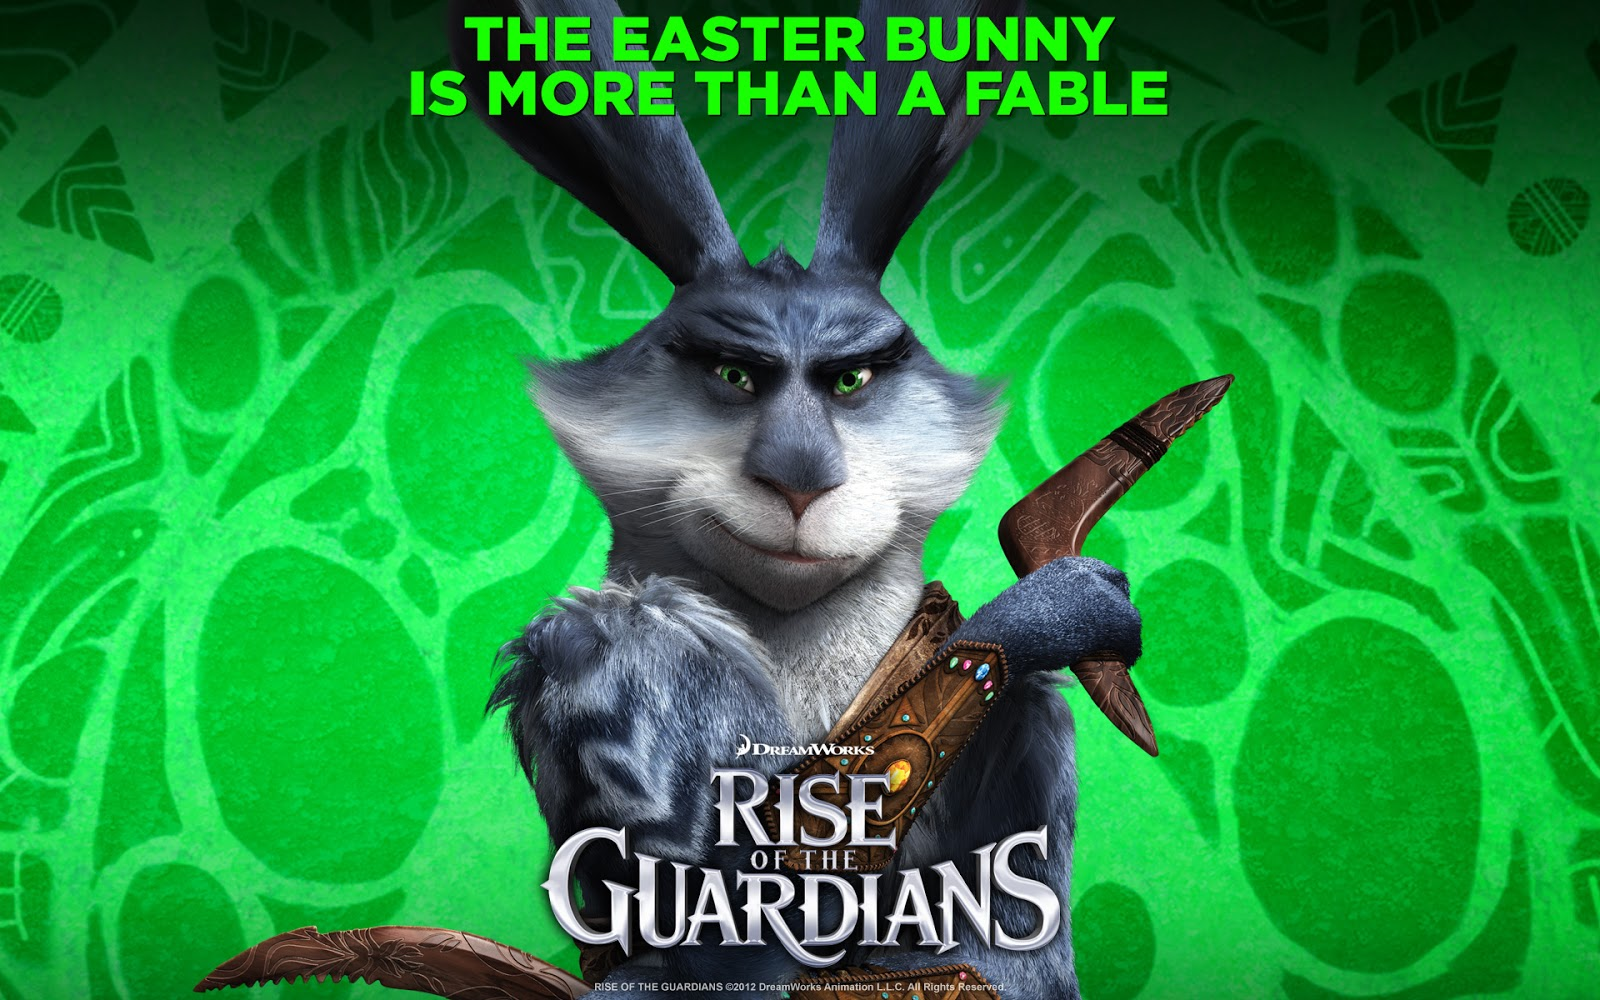 The Easter Bunny : Rise of the Guardians Movie Wallpaper